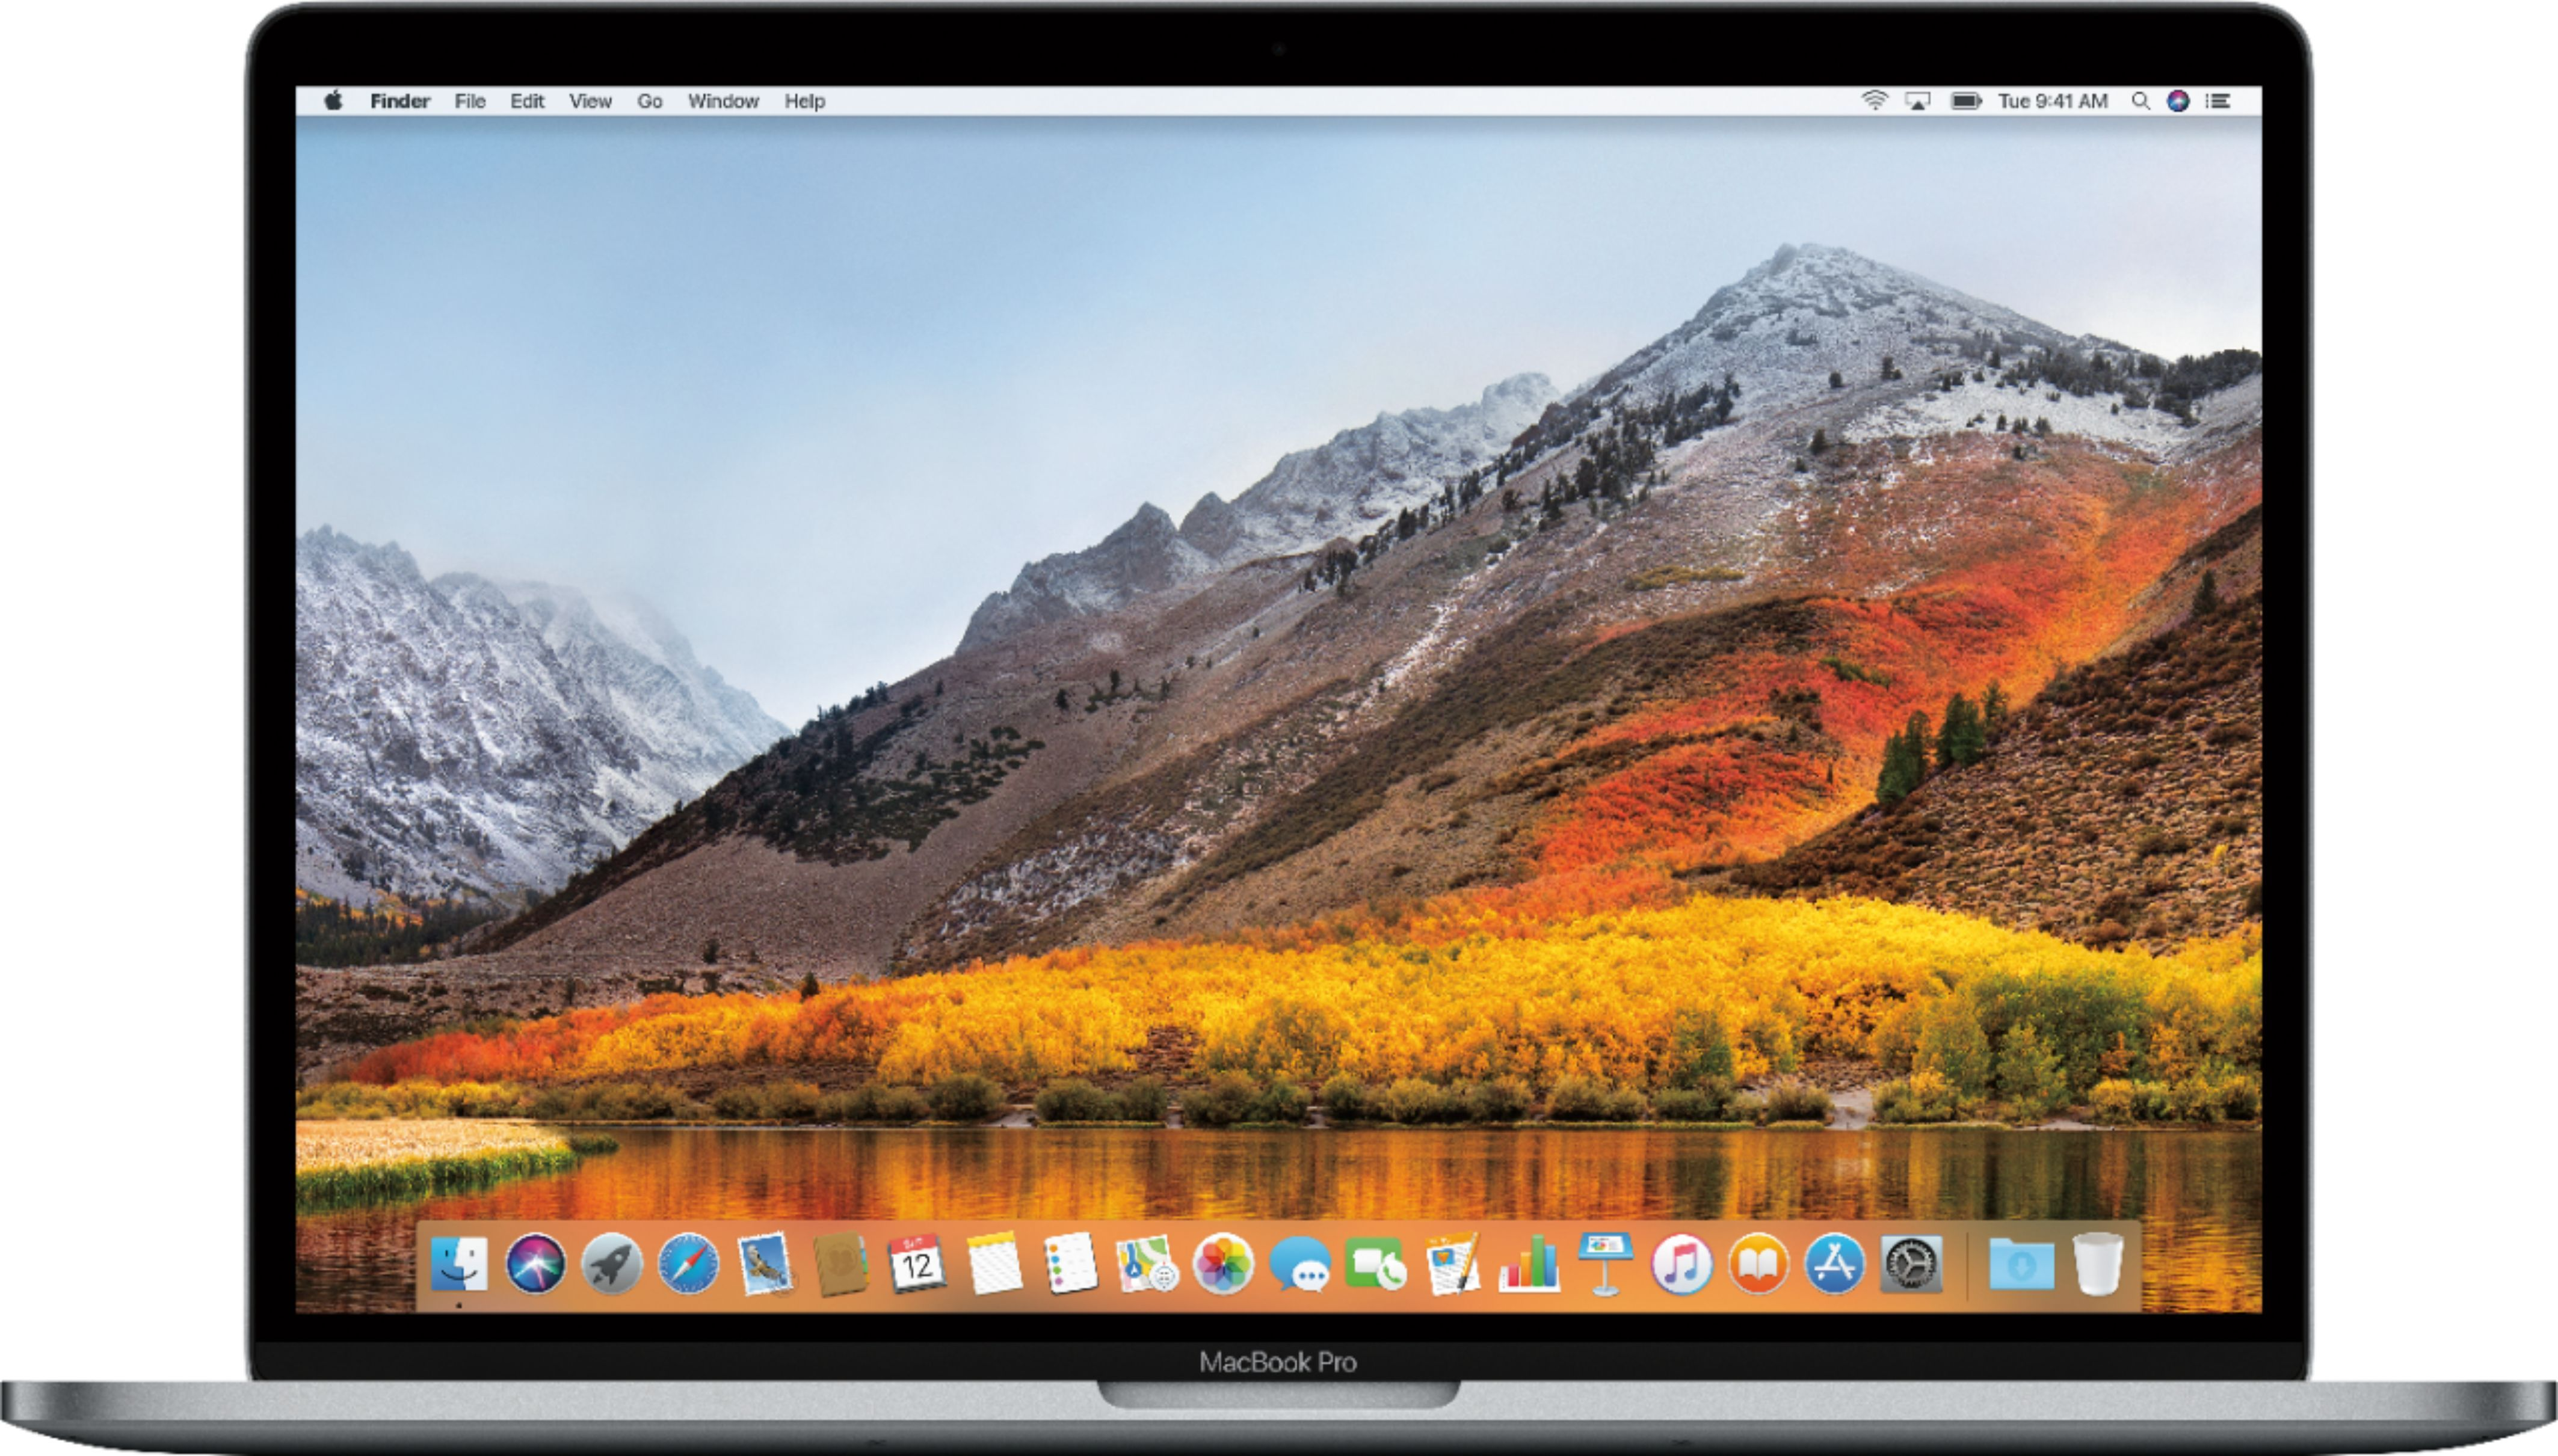 How to disable True Tone on a MacBook Pro